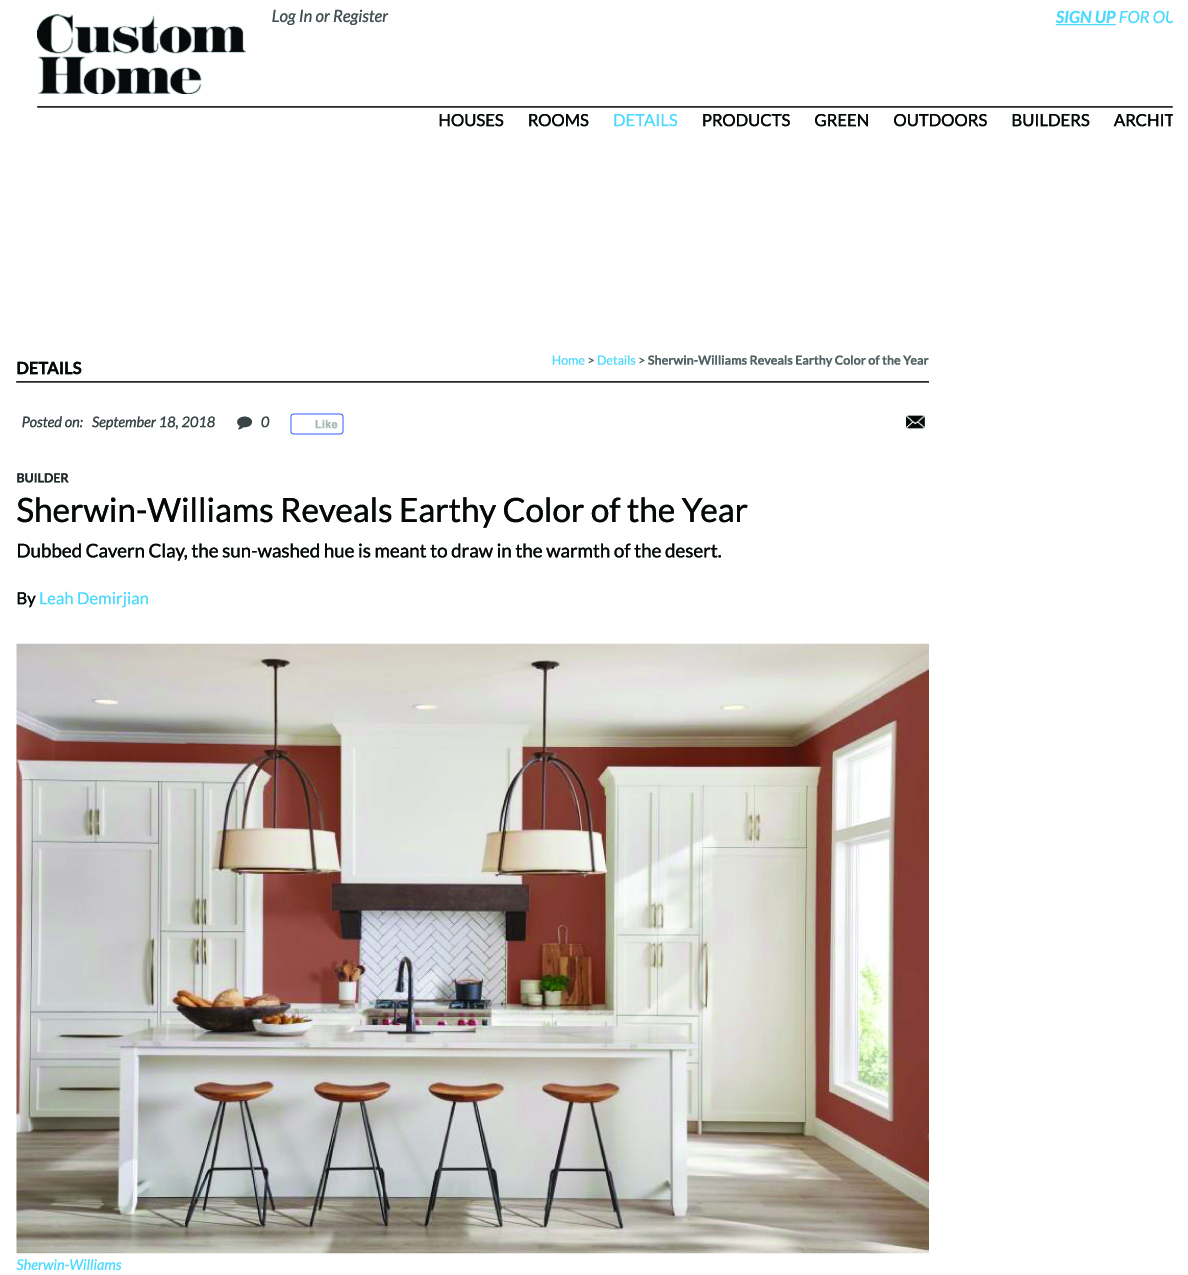 Sherwin-Williams Reveals Earthy Color o. copy.jpg